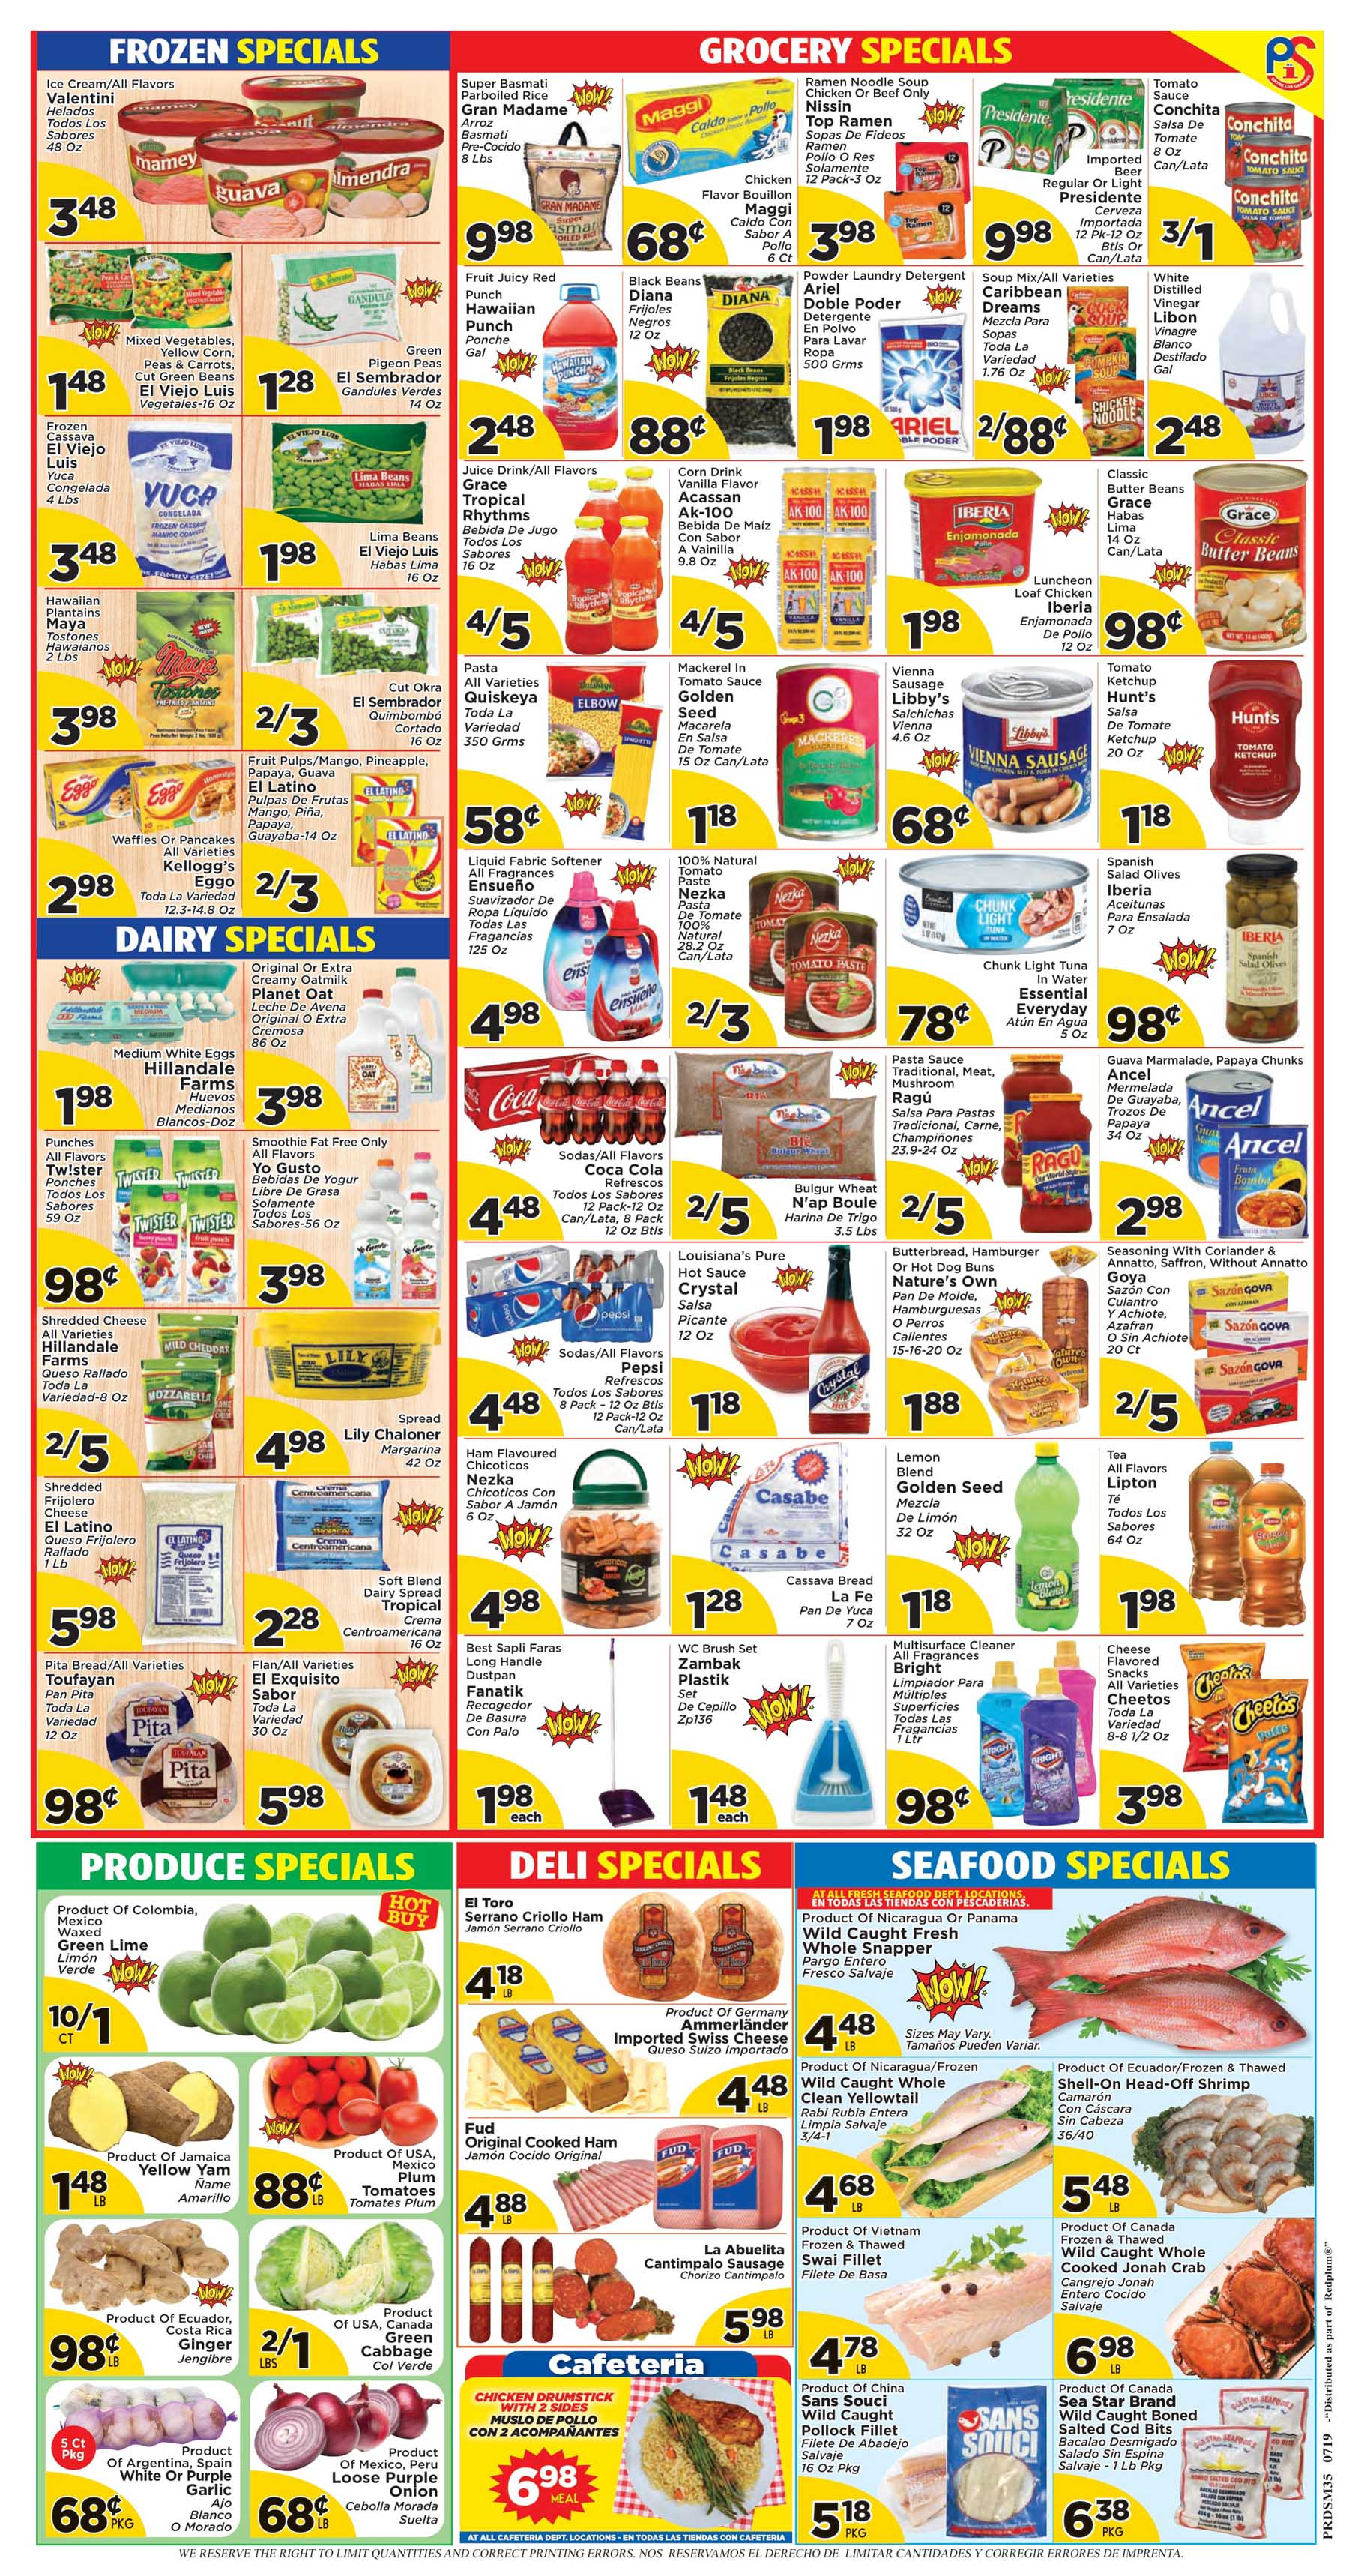 Presidente Supermarkets | Where your Dollar Buys You More